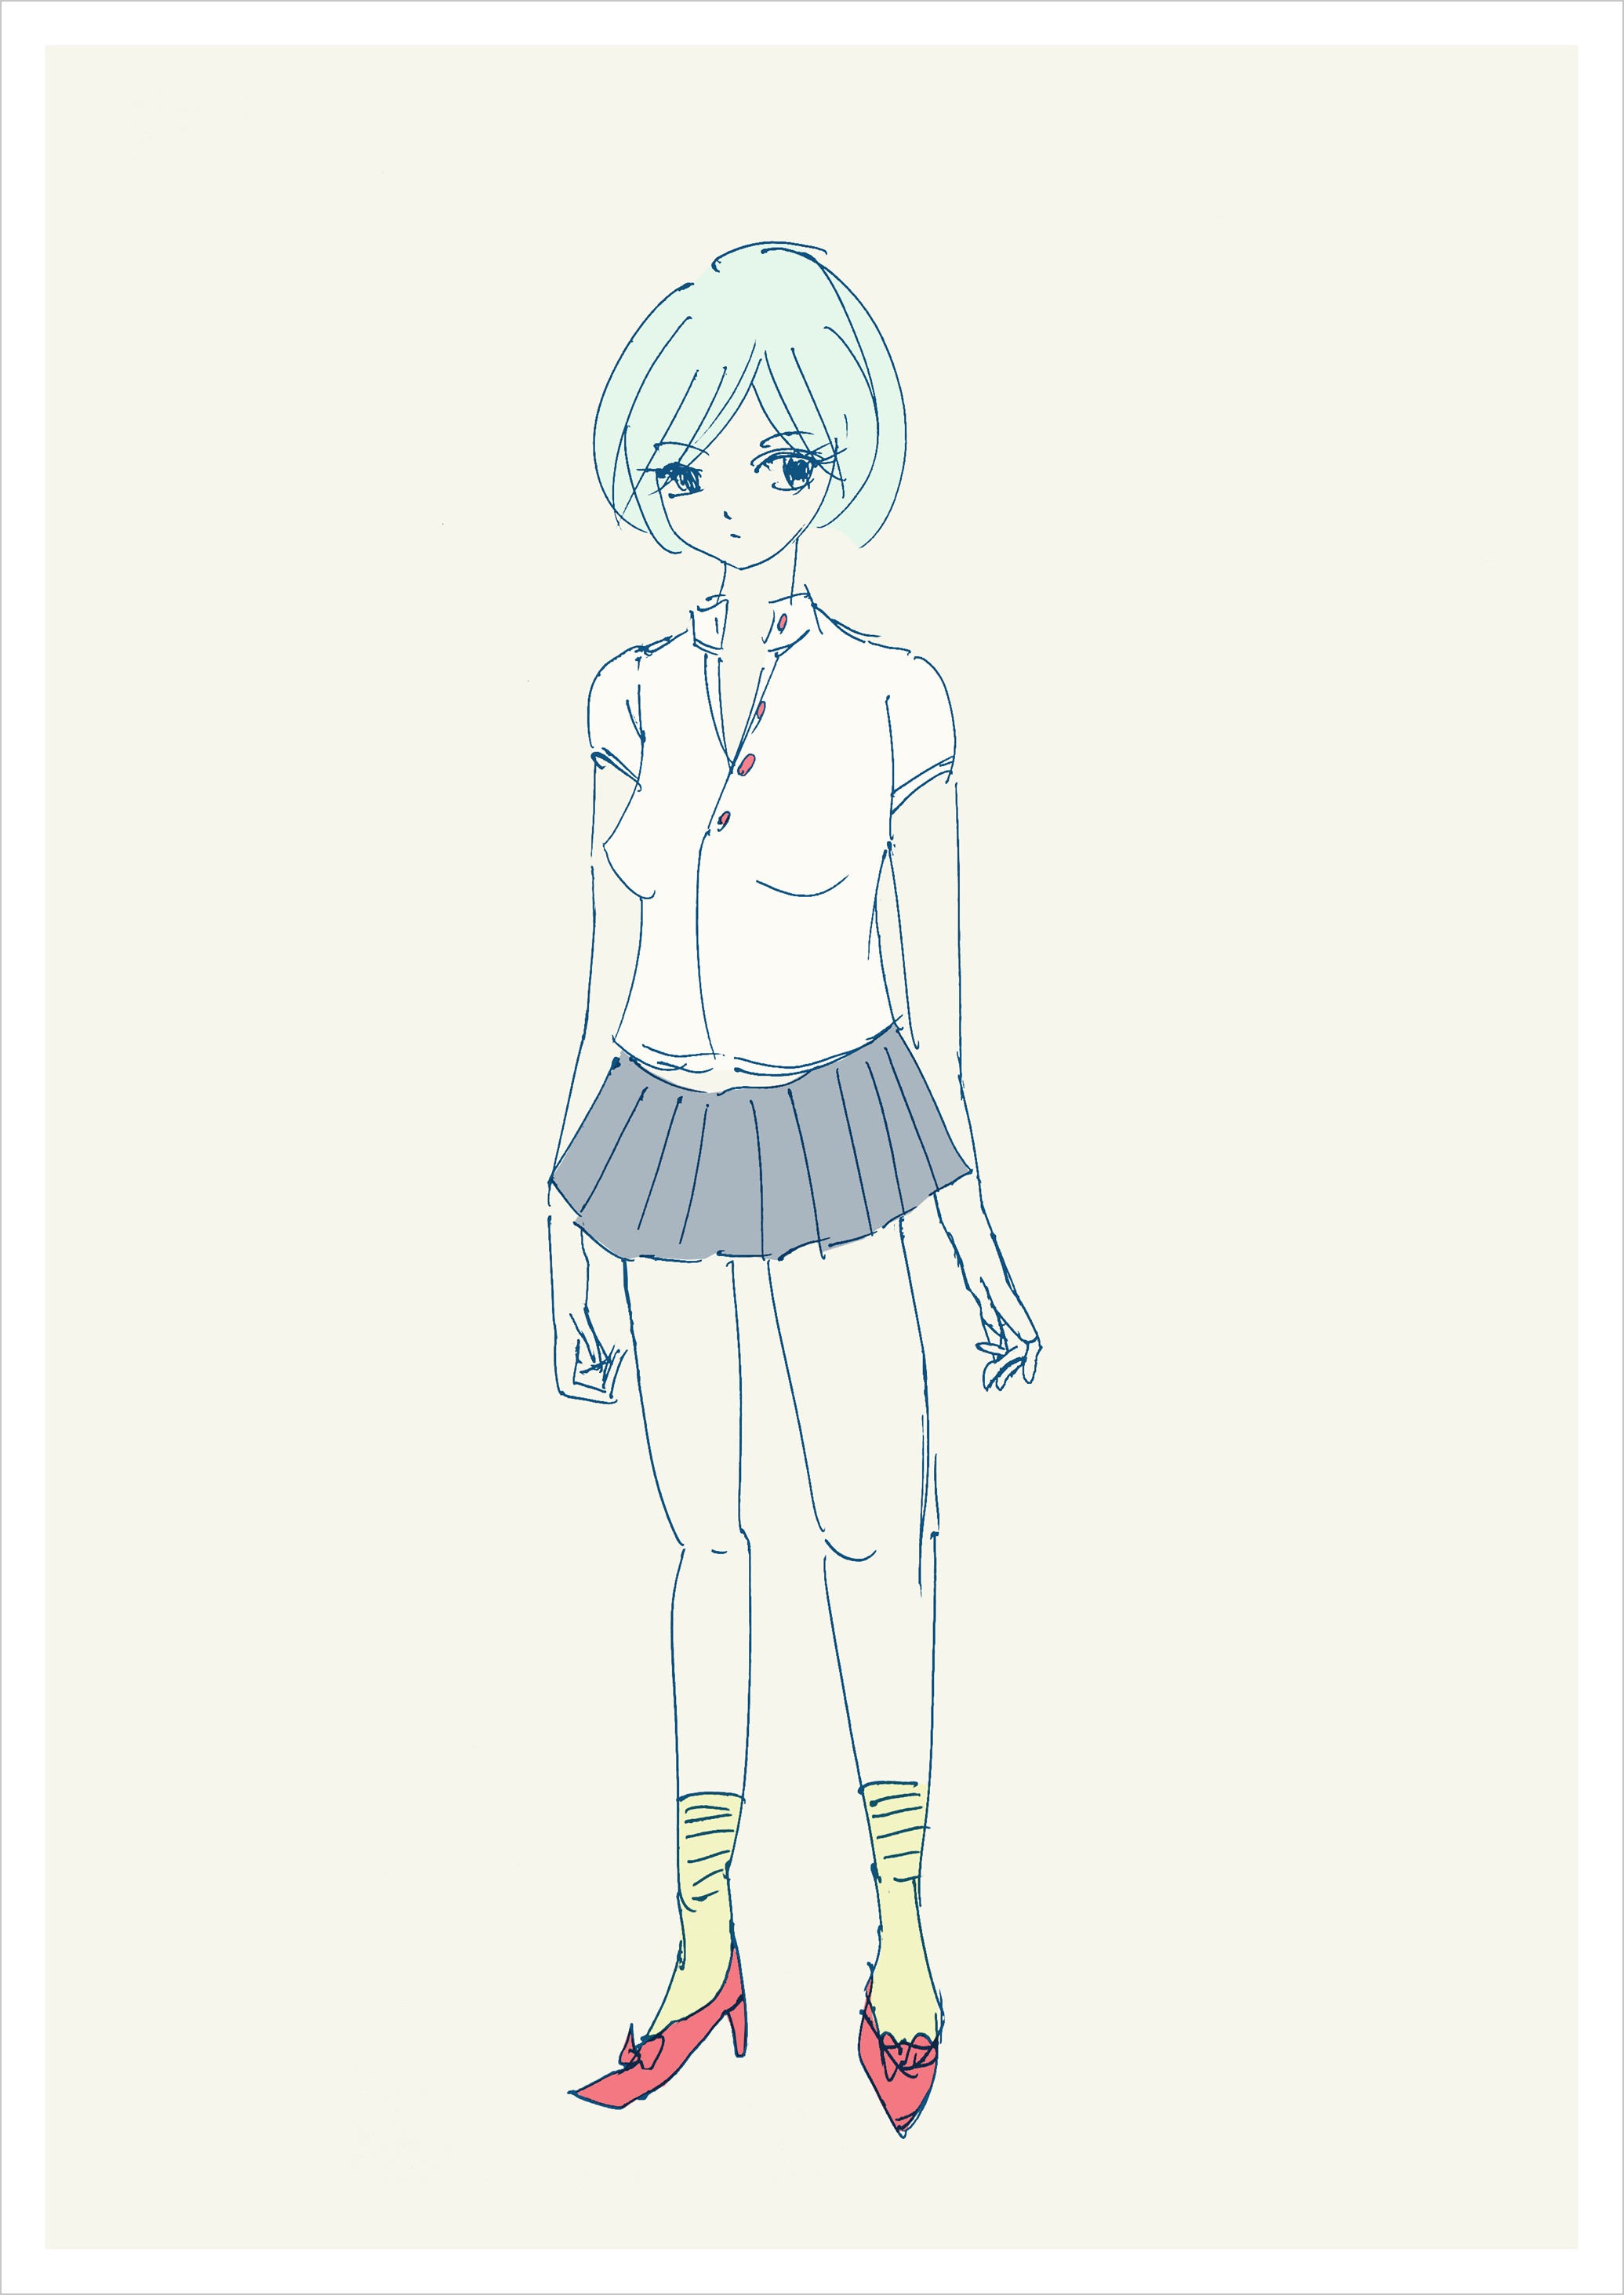 drawing-girl-oct-2018a.png